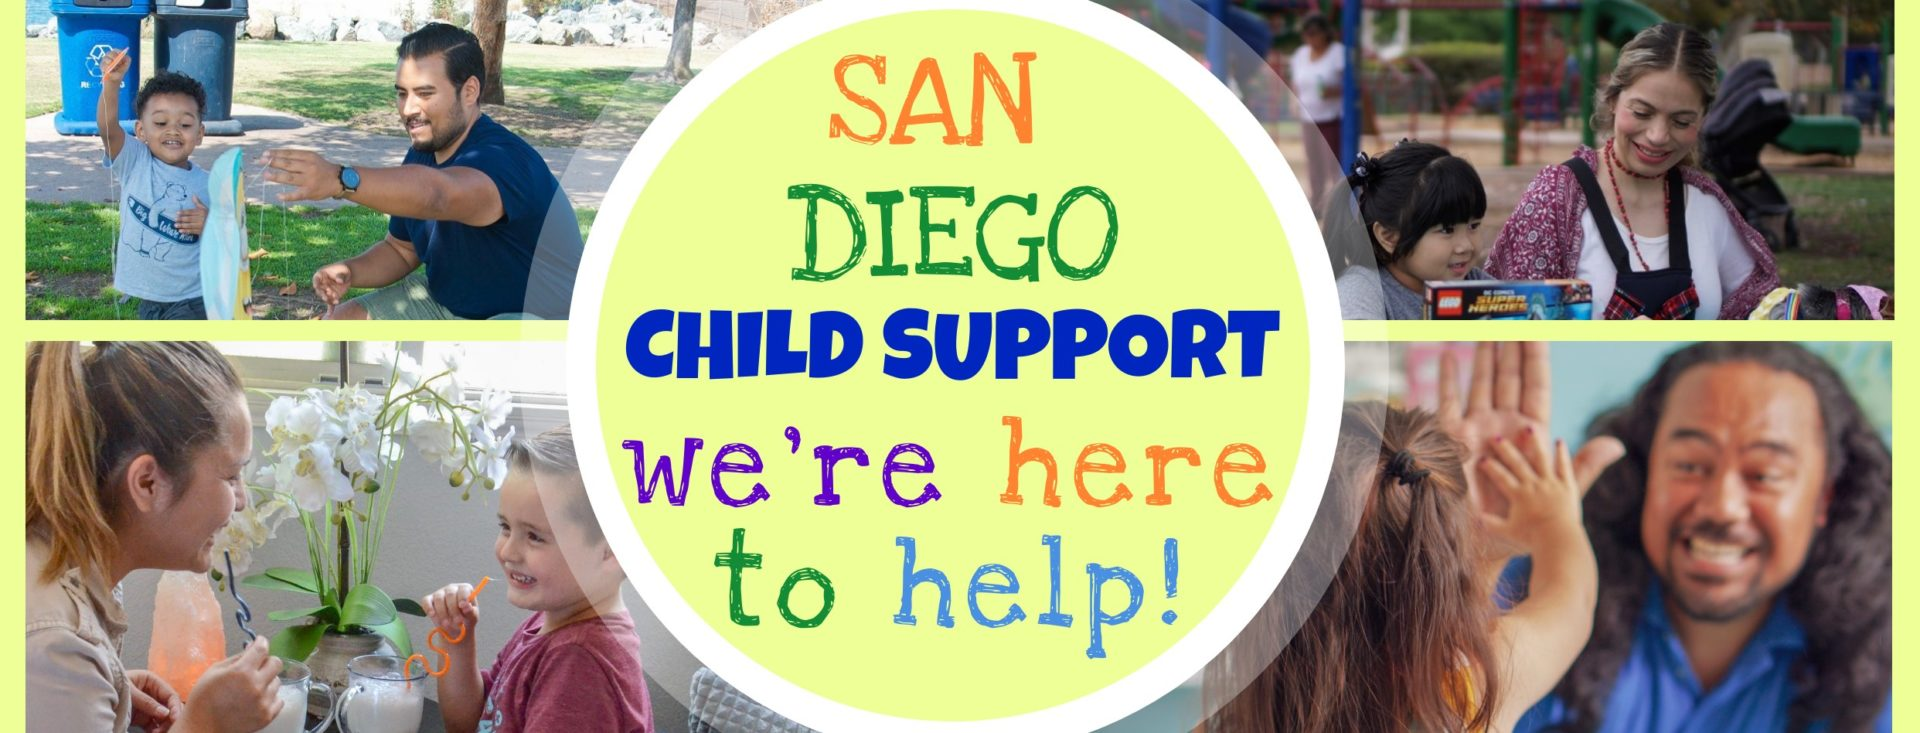 Examples of the Department of Child Support Services helping children.